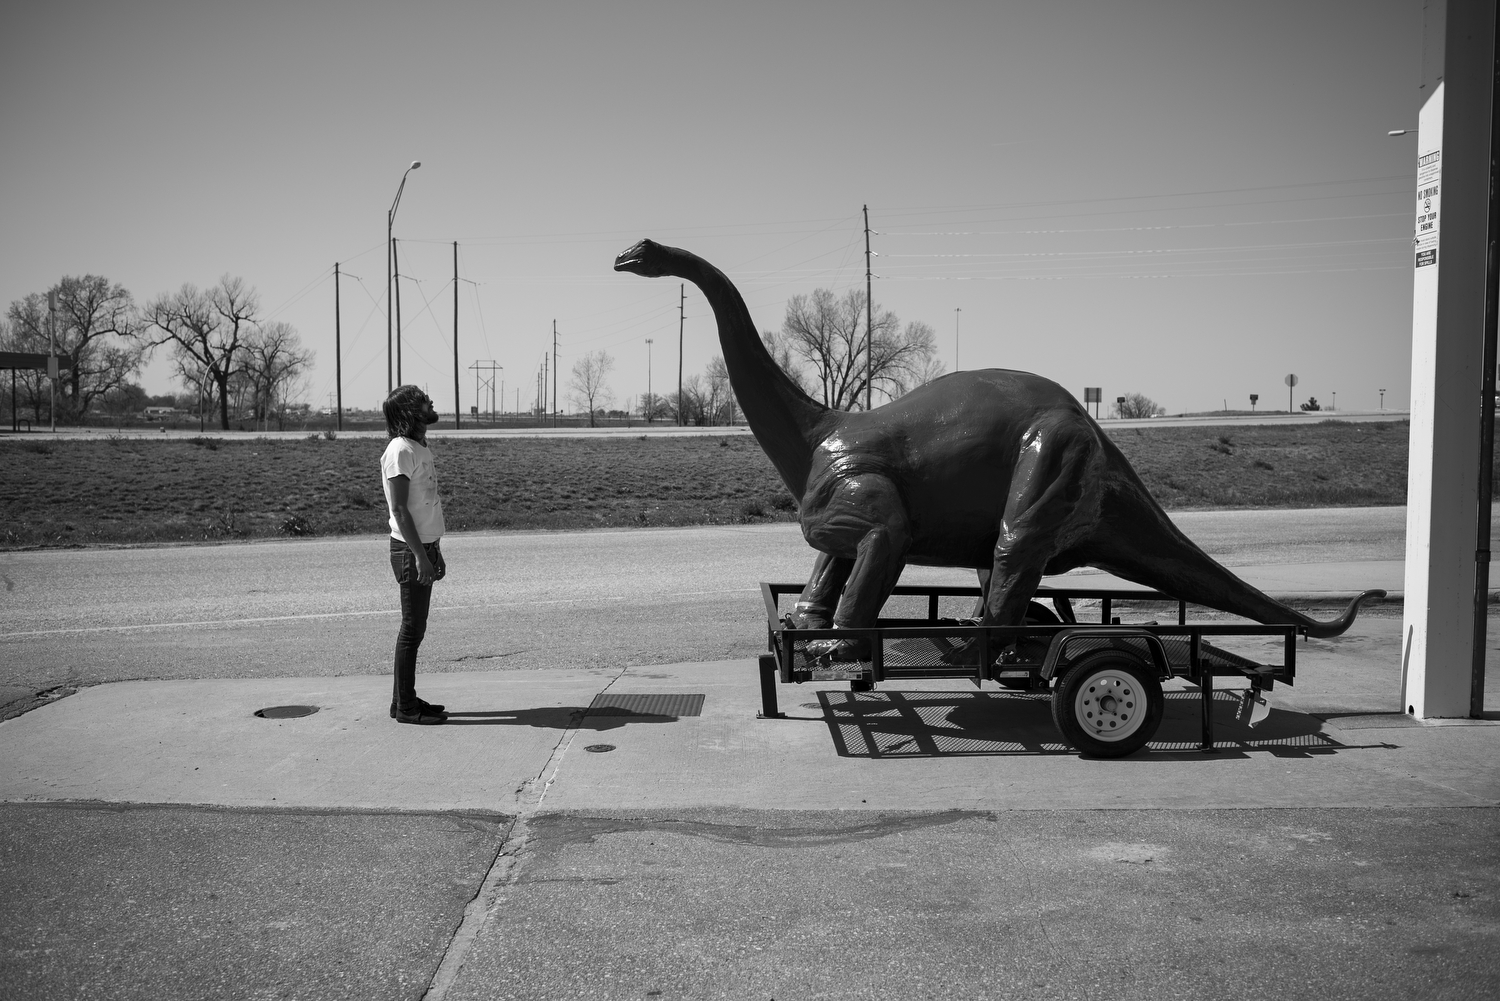 2:45PM— One of many gas stations visited on tour. The only dinosaur visited.